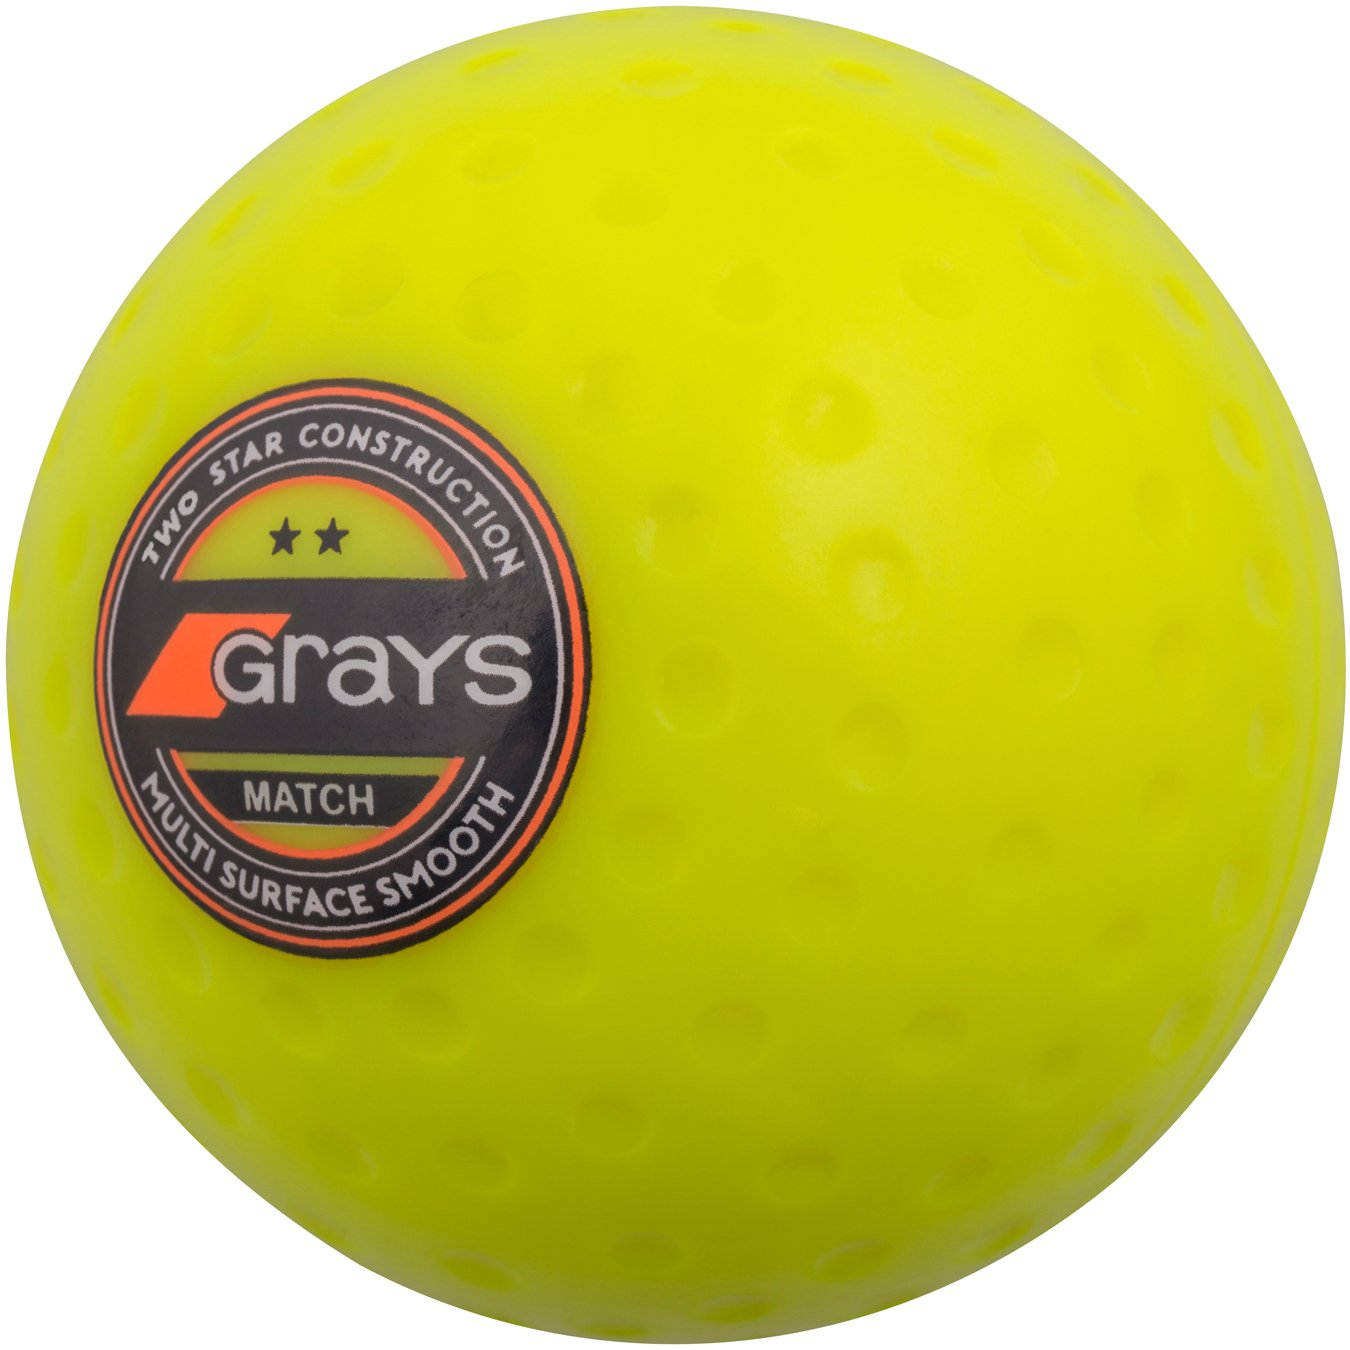 GRAYS Match Bola de Hockey, Amarillo 644504